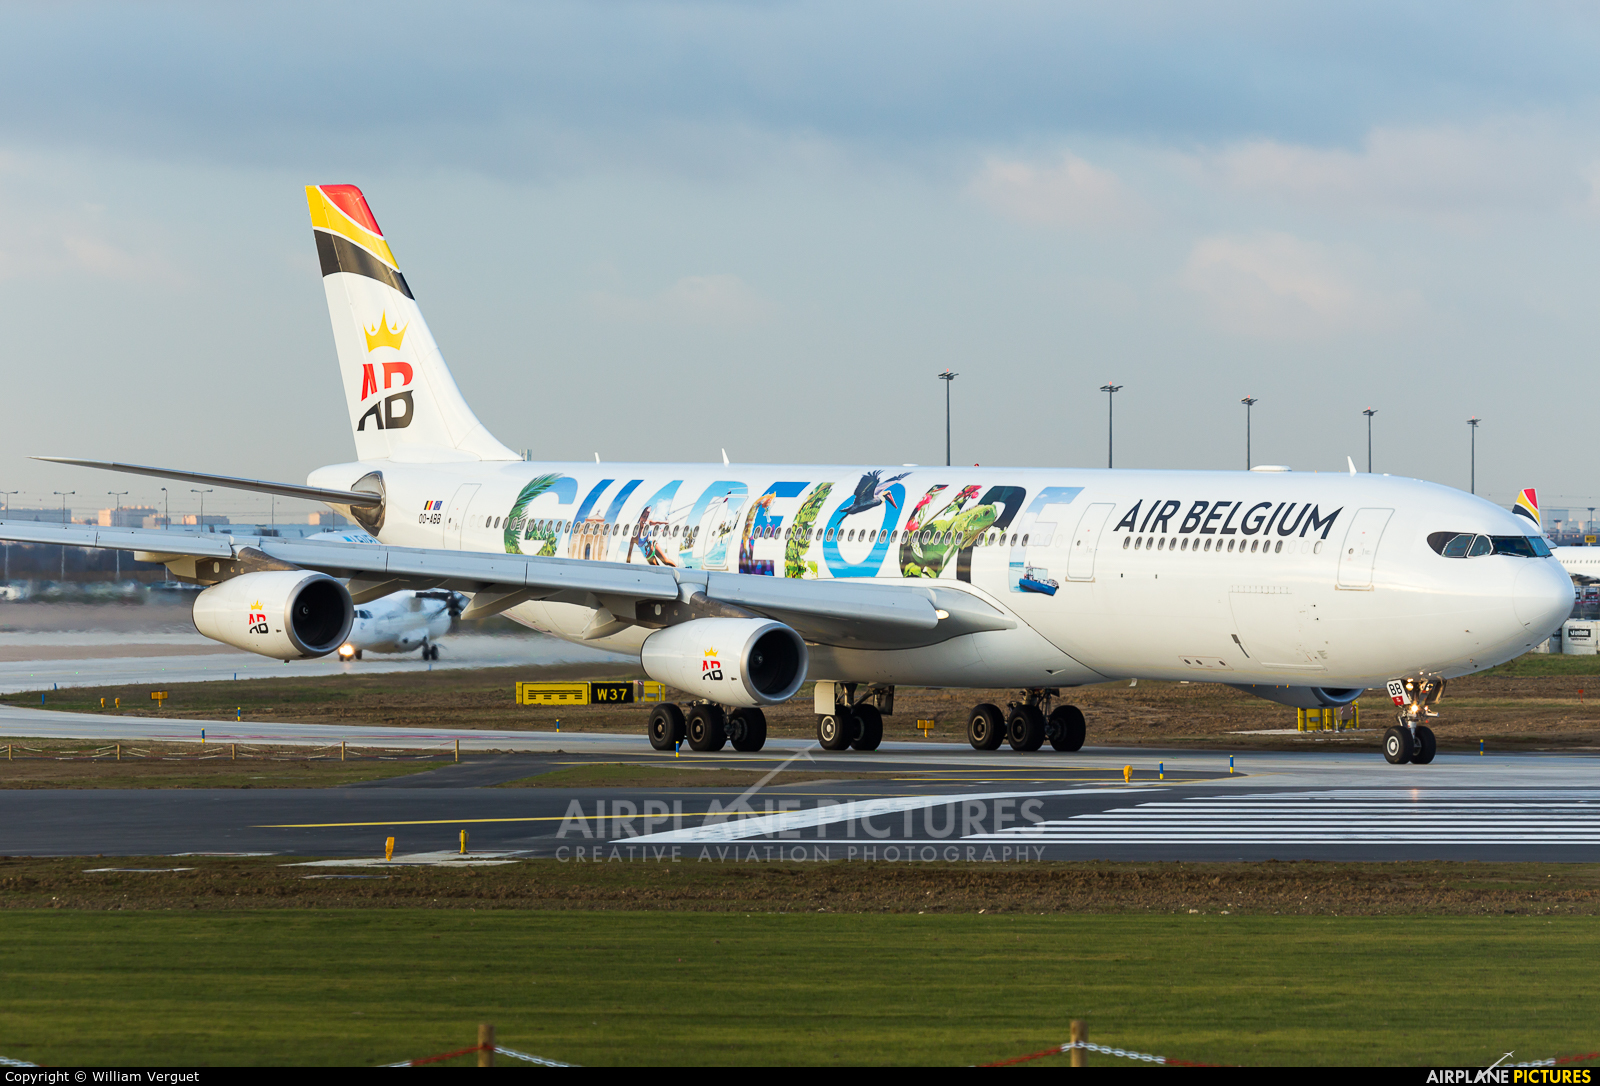 Air Belgium OO-ABB aircraft at Paris - Orly